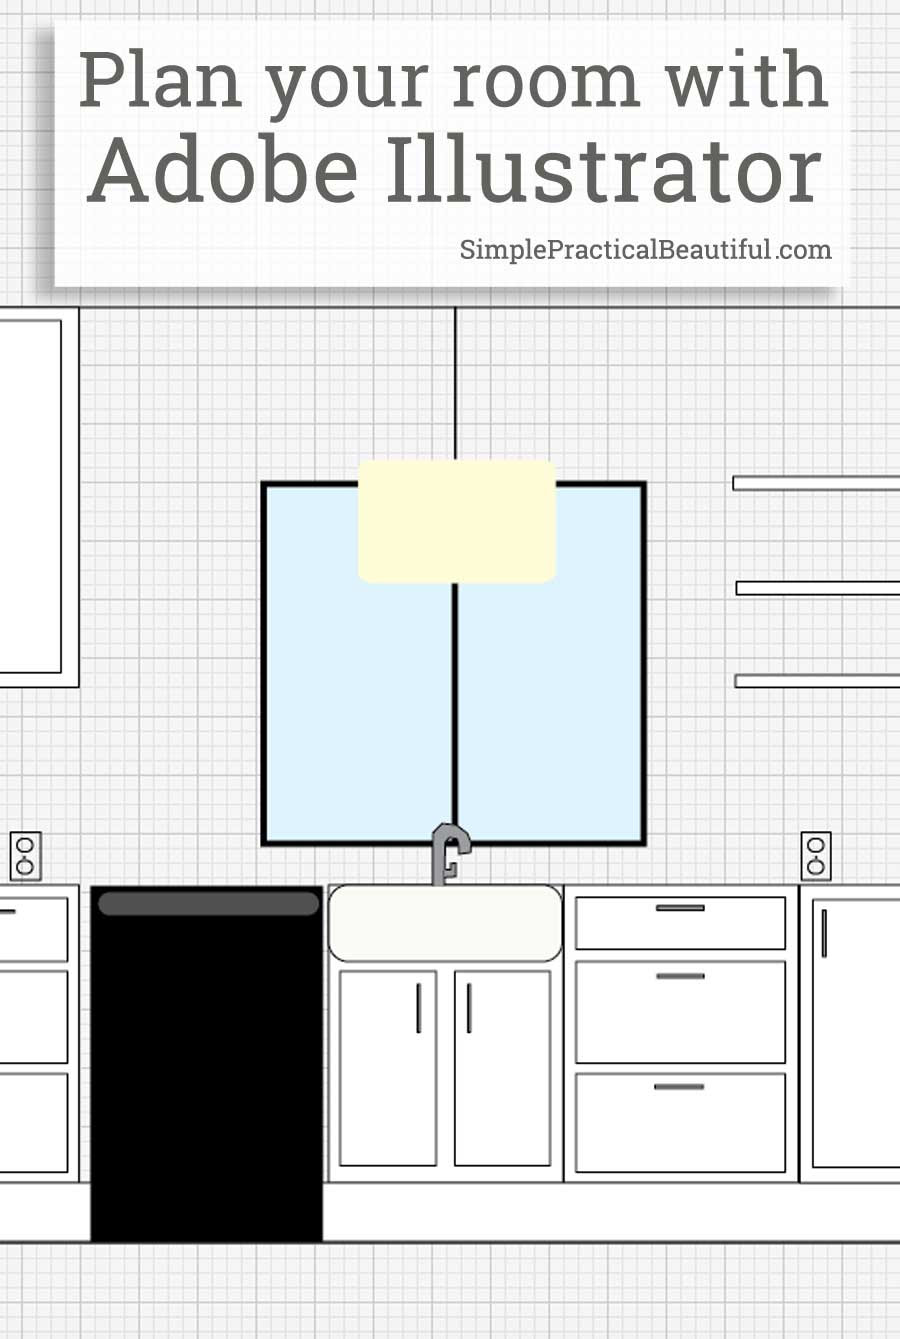 Use Adobe Illustrator to Plan a Room Layout Simple